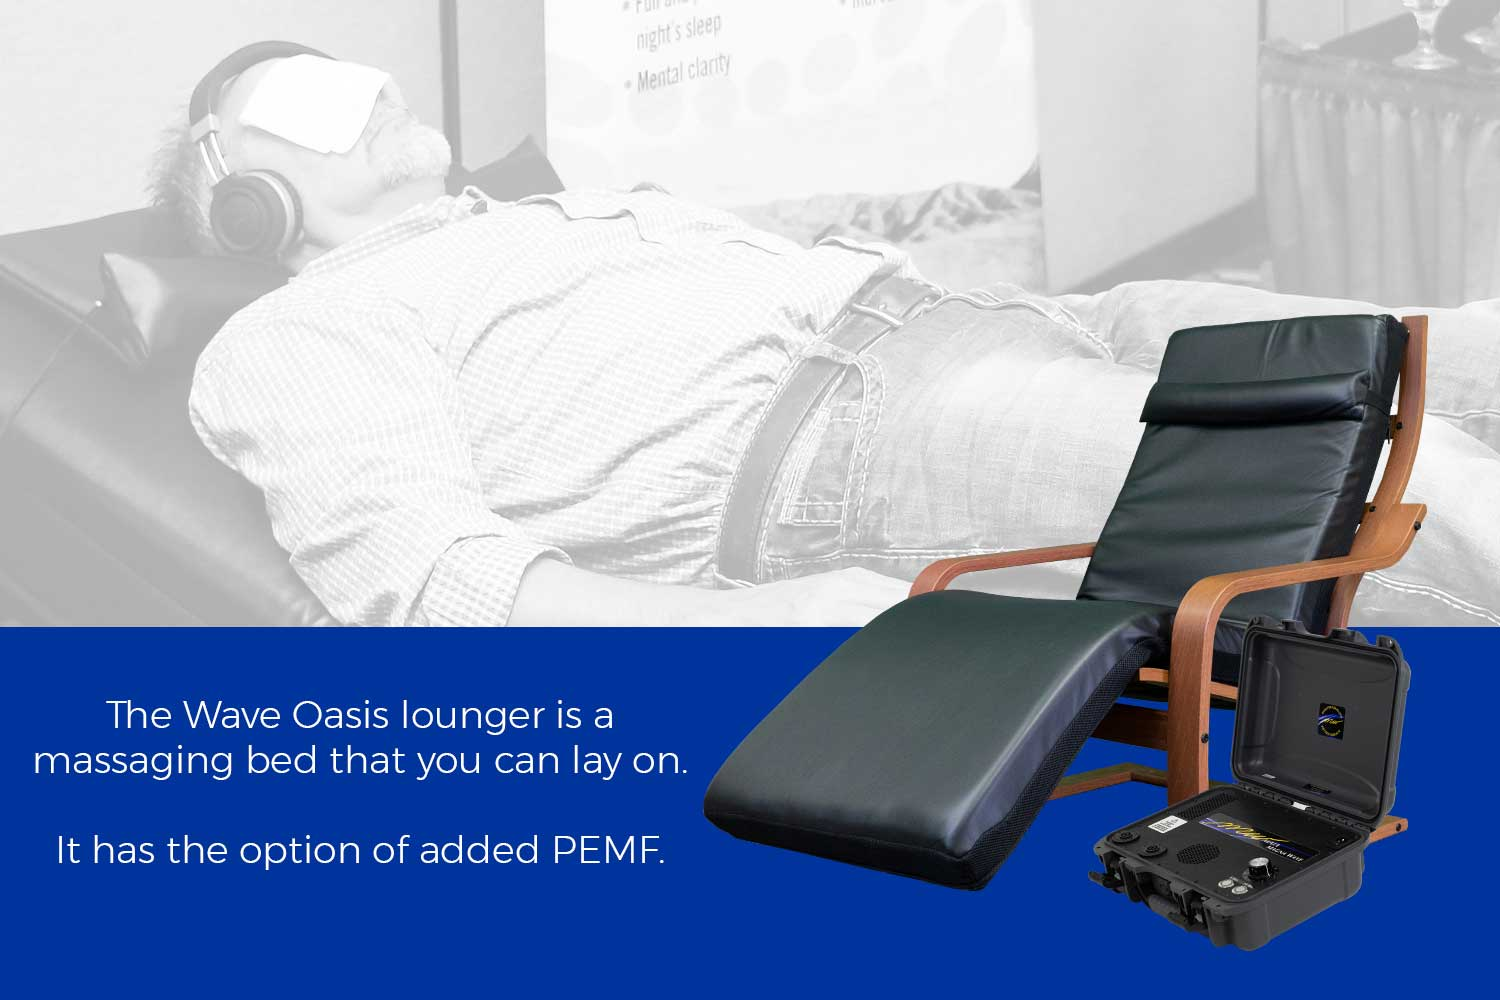 The Wave Oasis lounger is a massaging bed that you can lay on. It has the option of added PEMF.